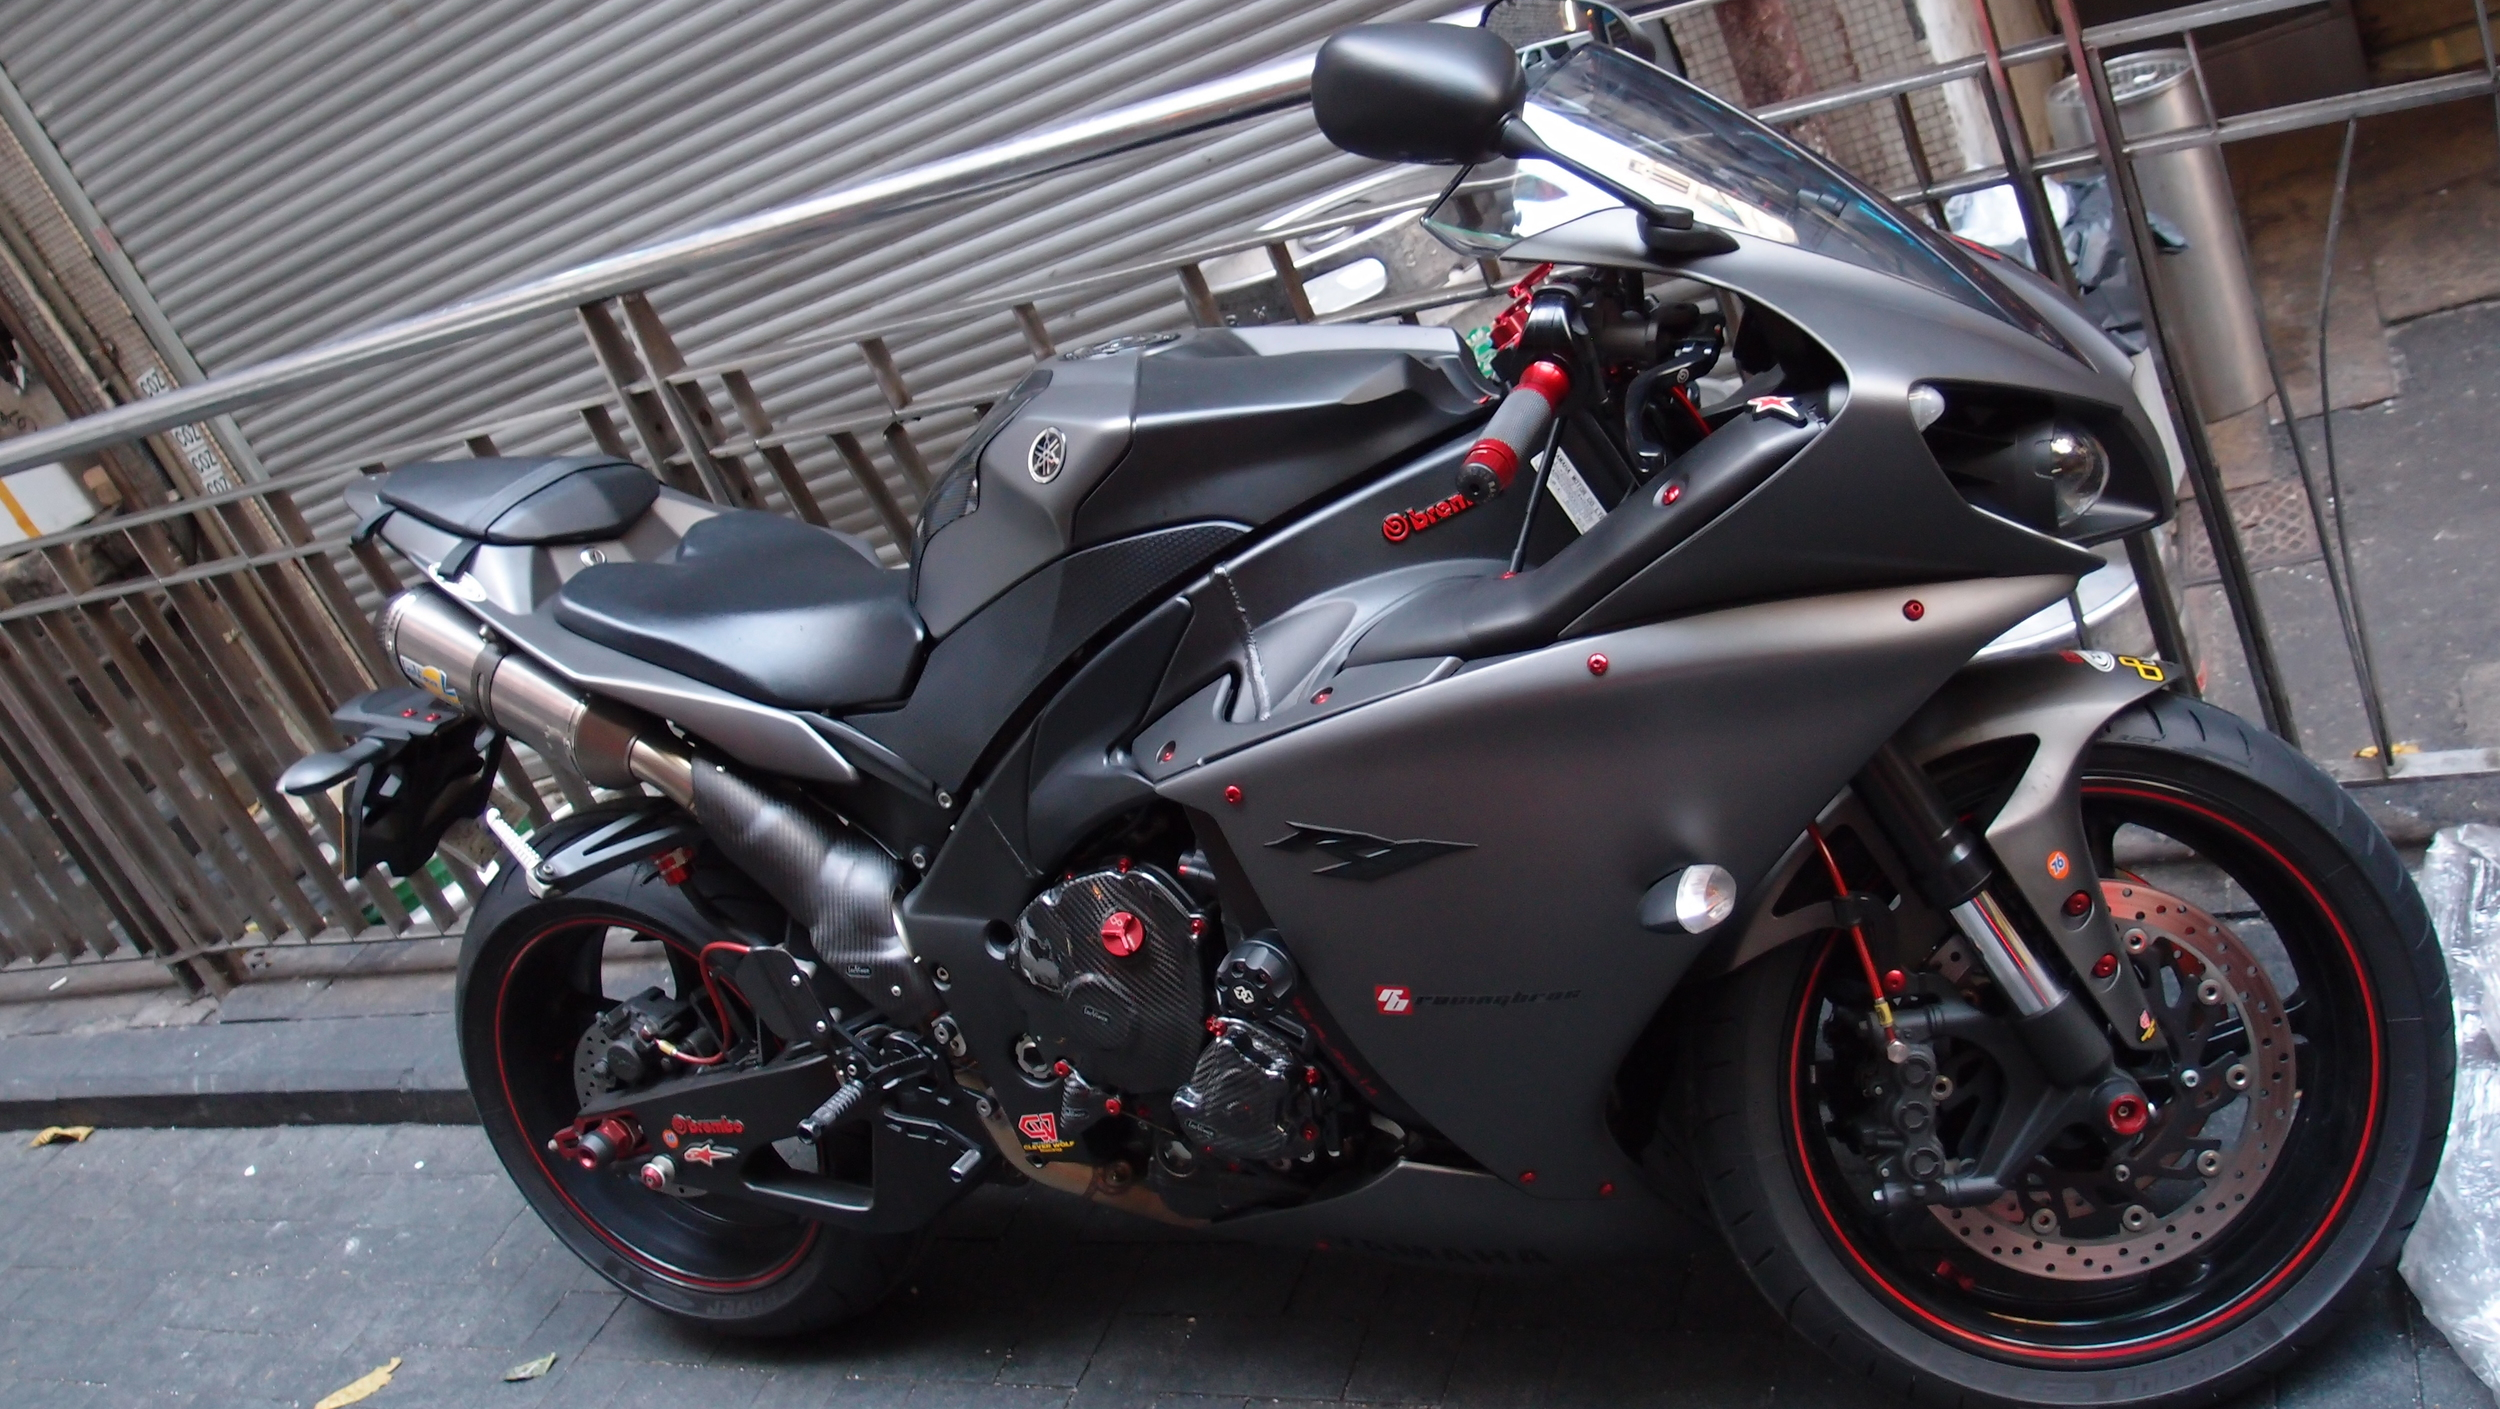 I am not an expert on motorbikes but I believe this is the special Yamaha Brembo R1 motorbike and it rocks!